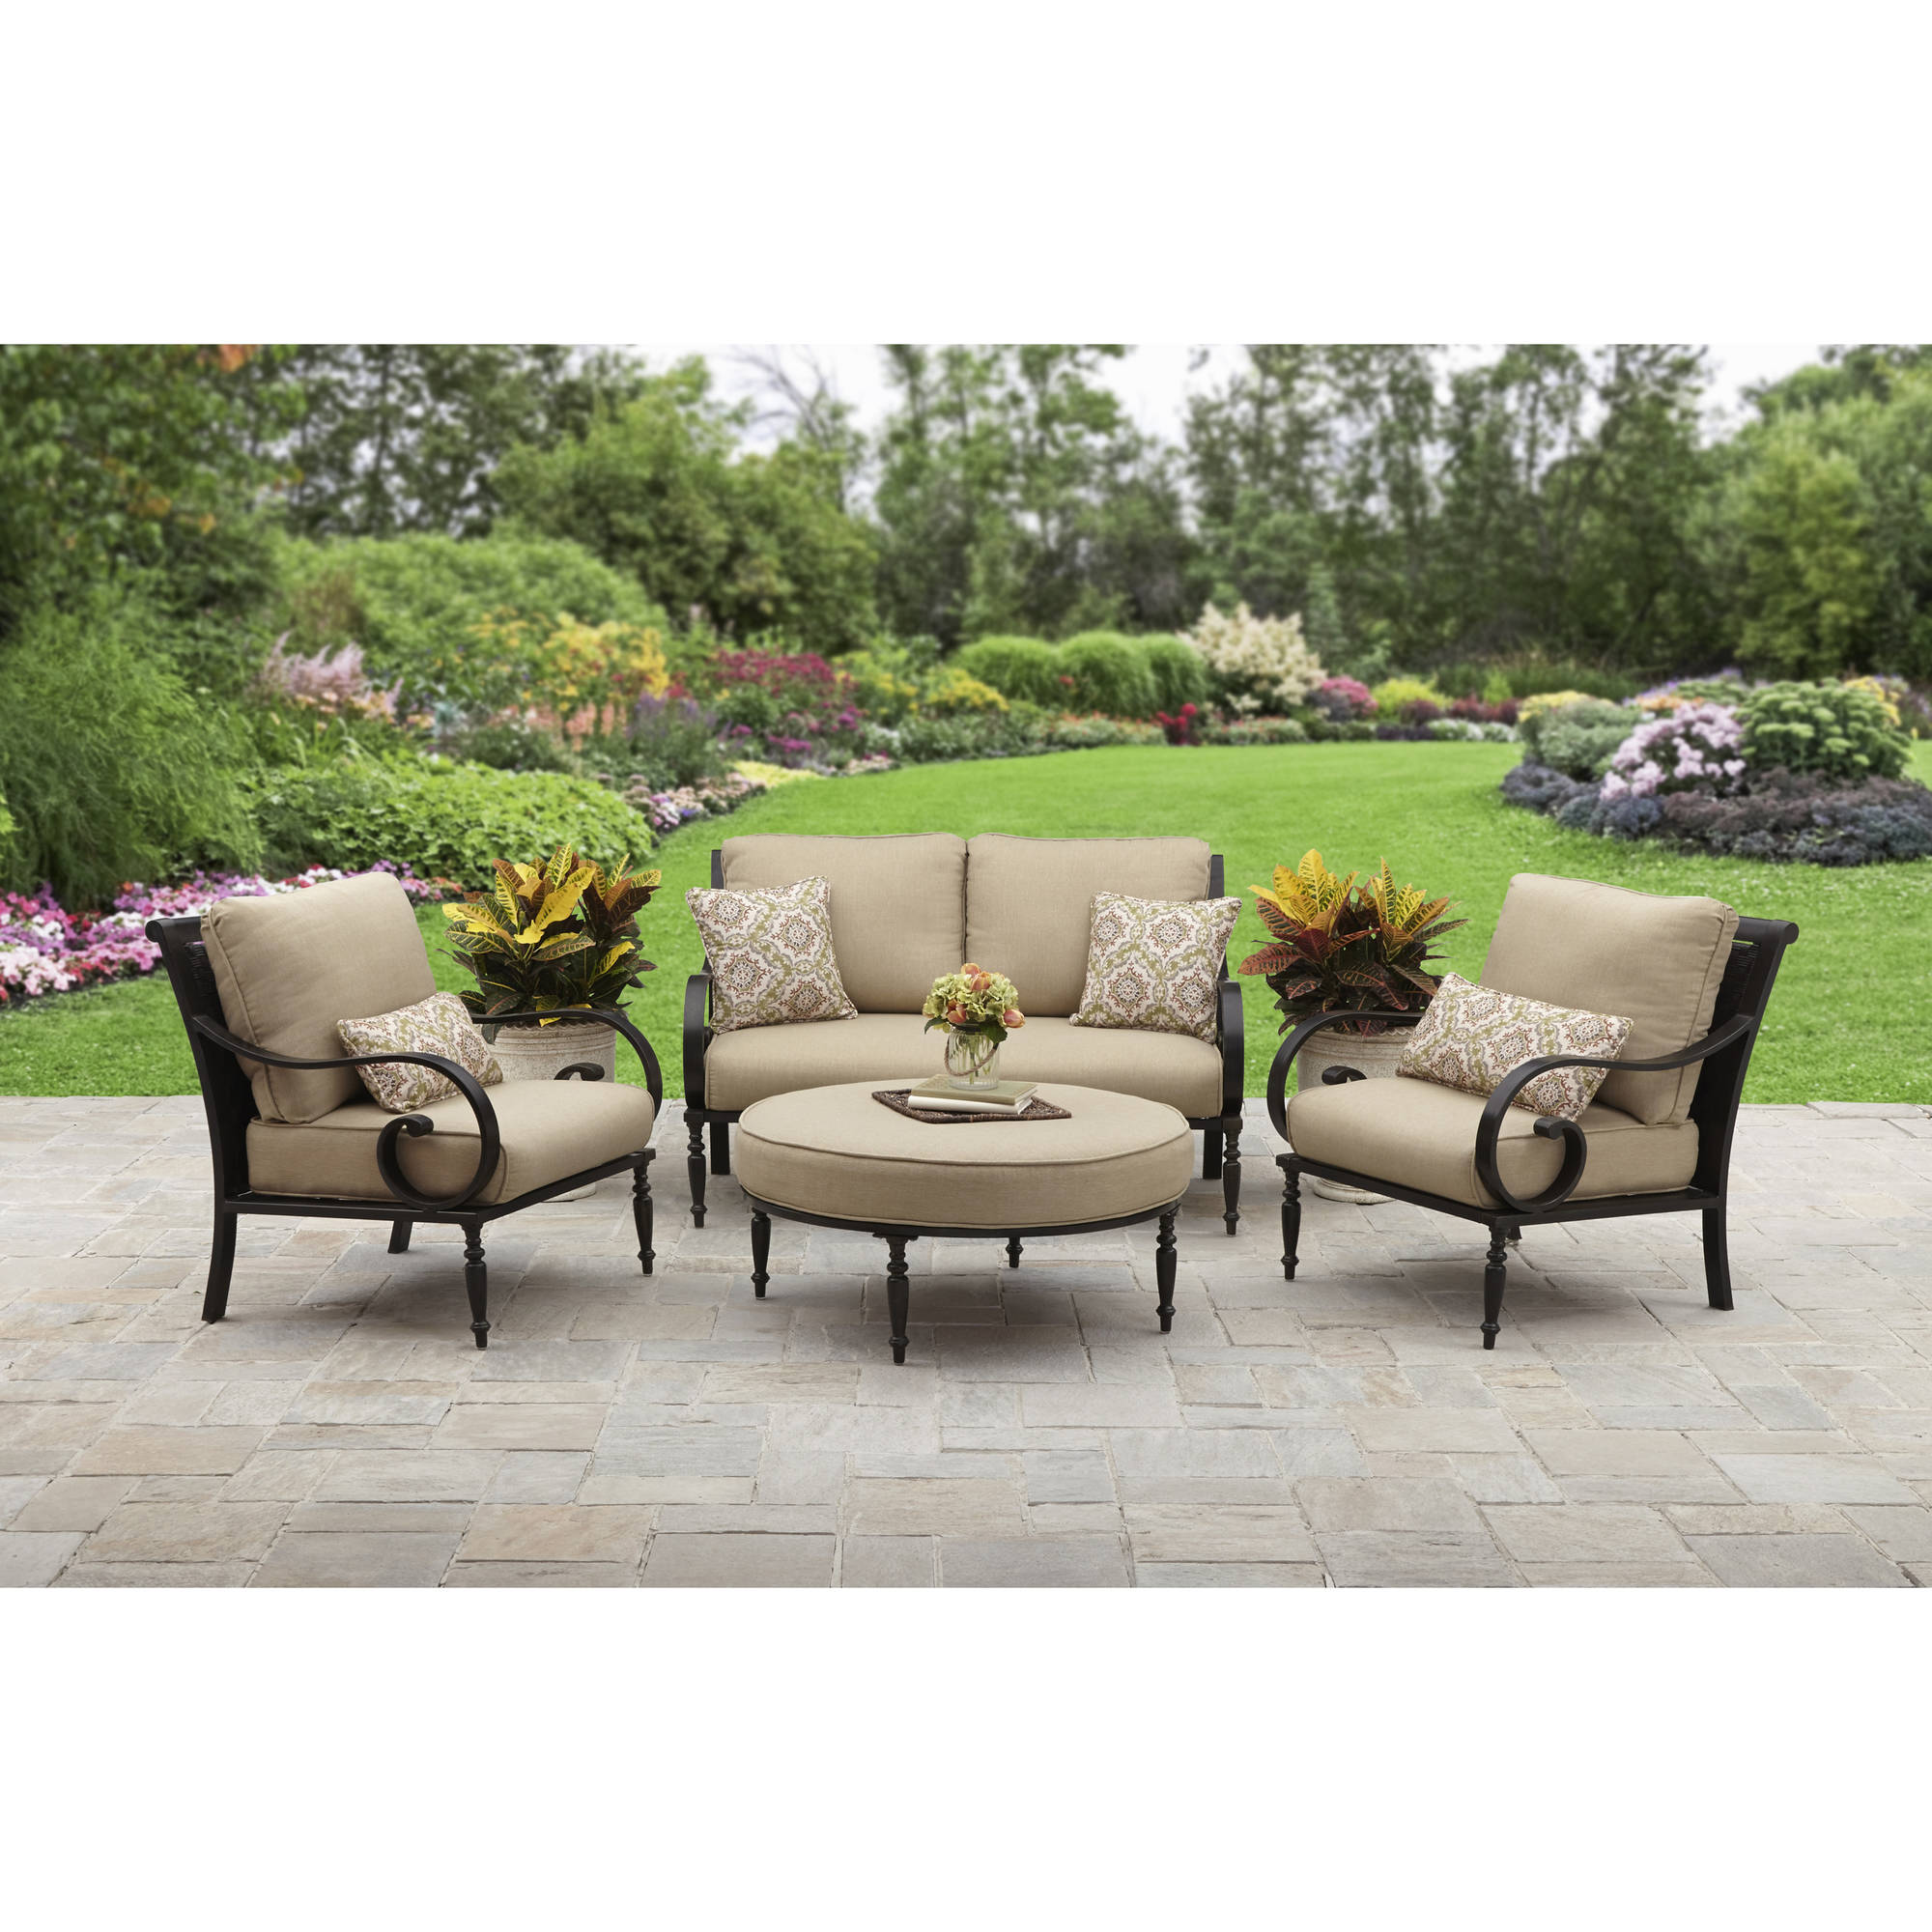 better homes and gardens englewood heights ii aluminum 4piece patio set seats